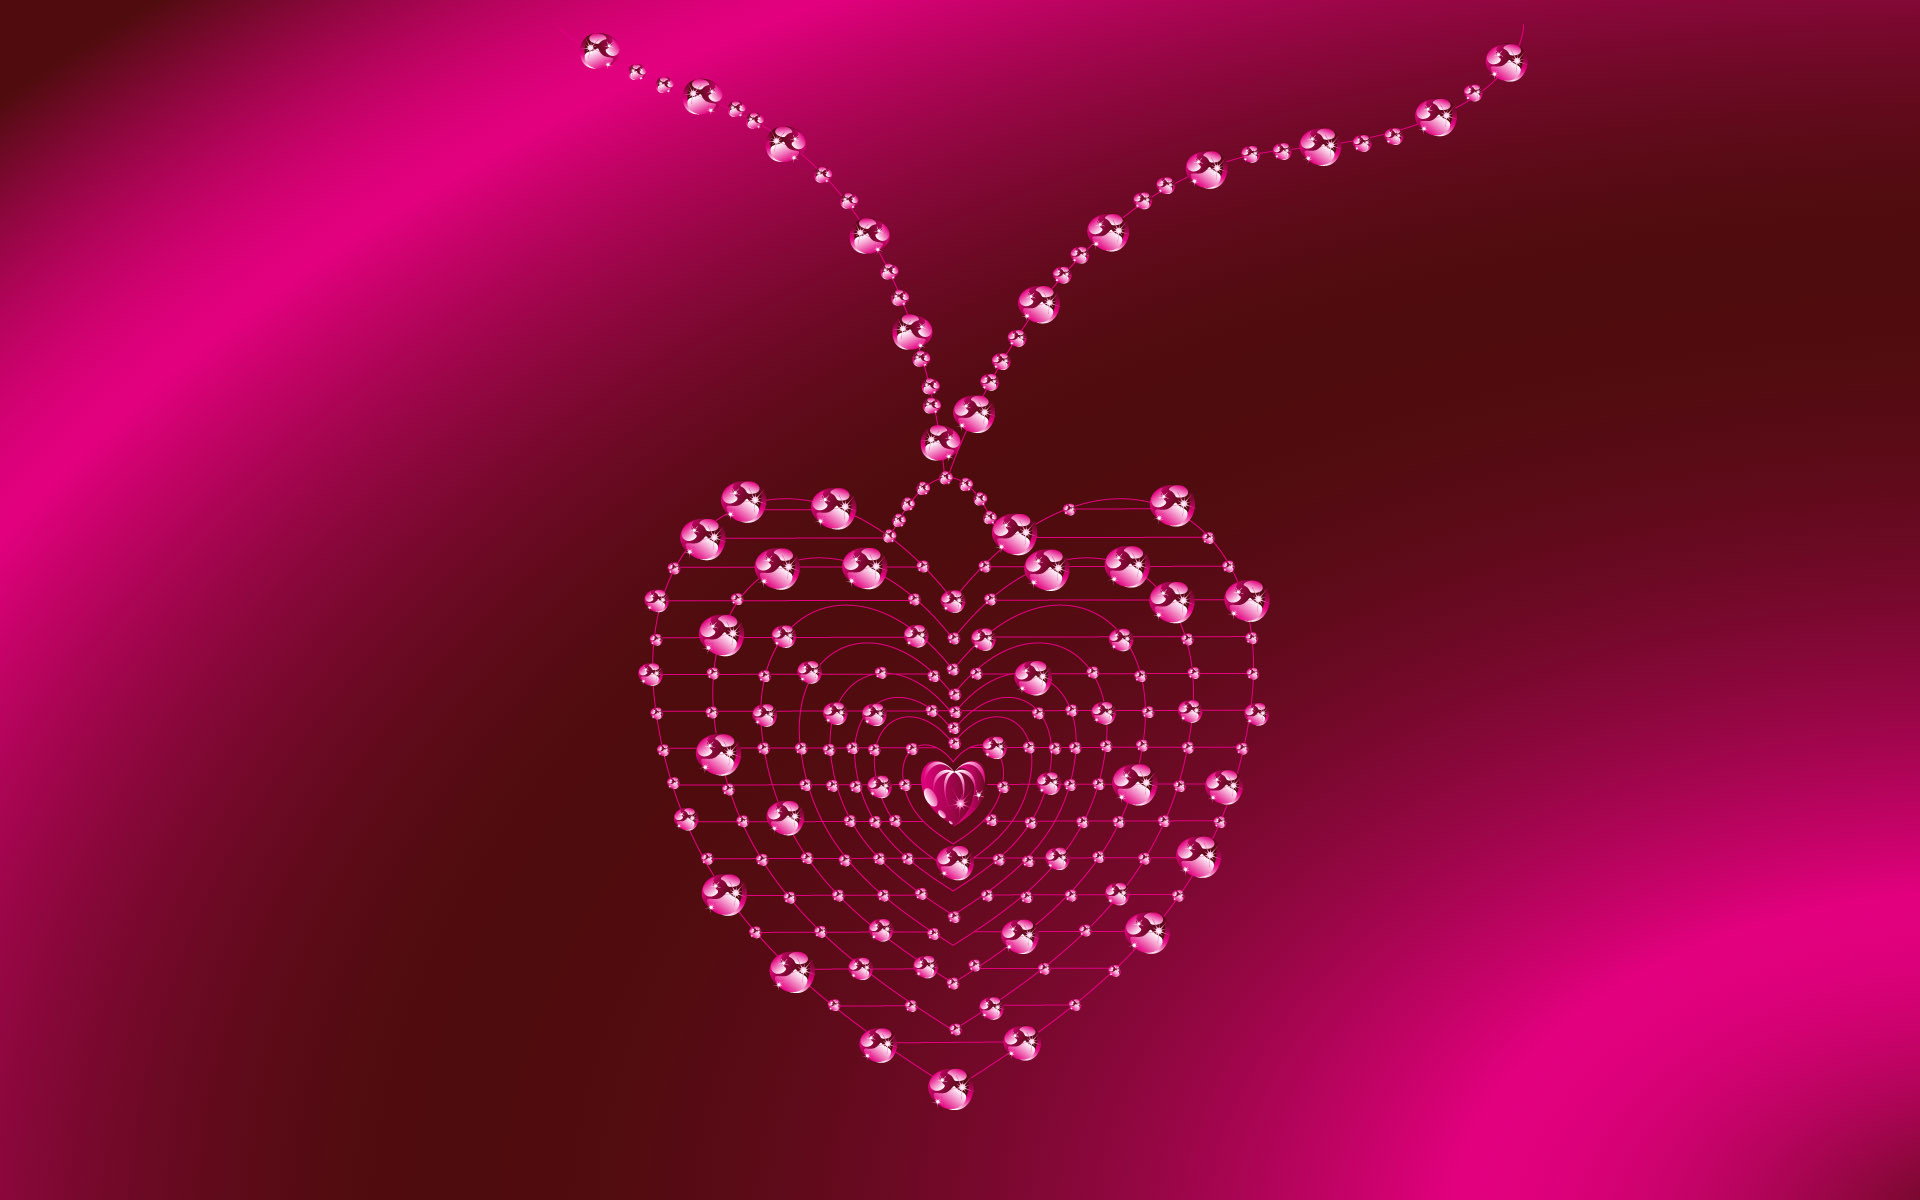 Previous: Pink Jewelry Heart …